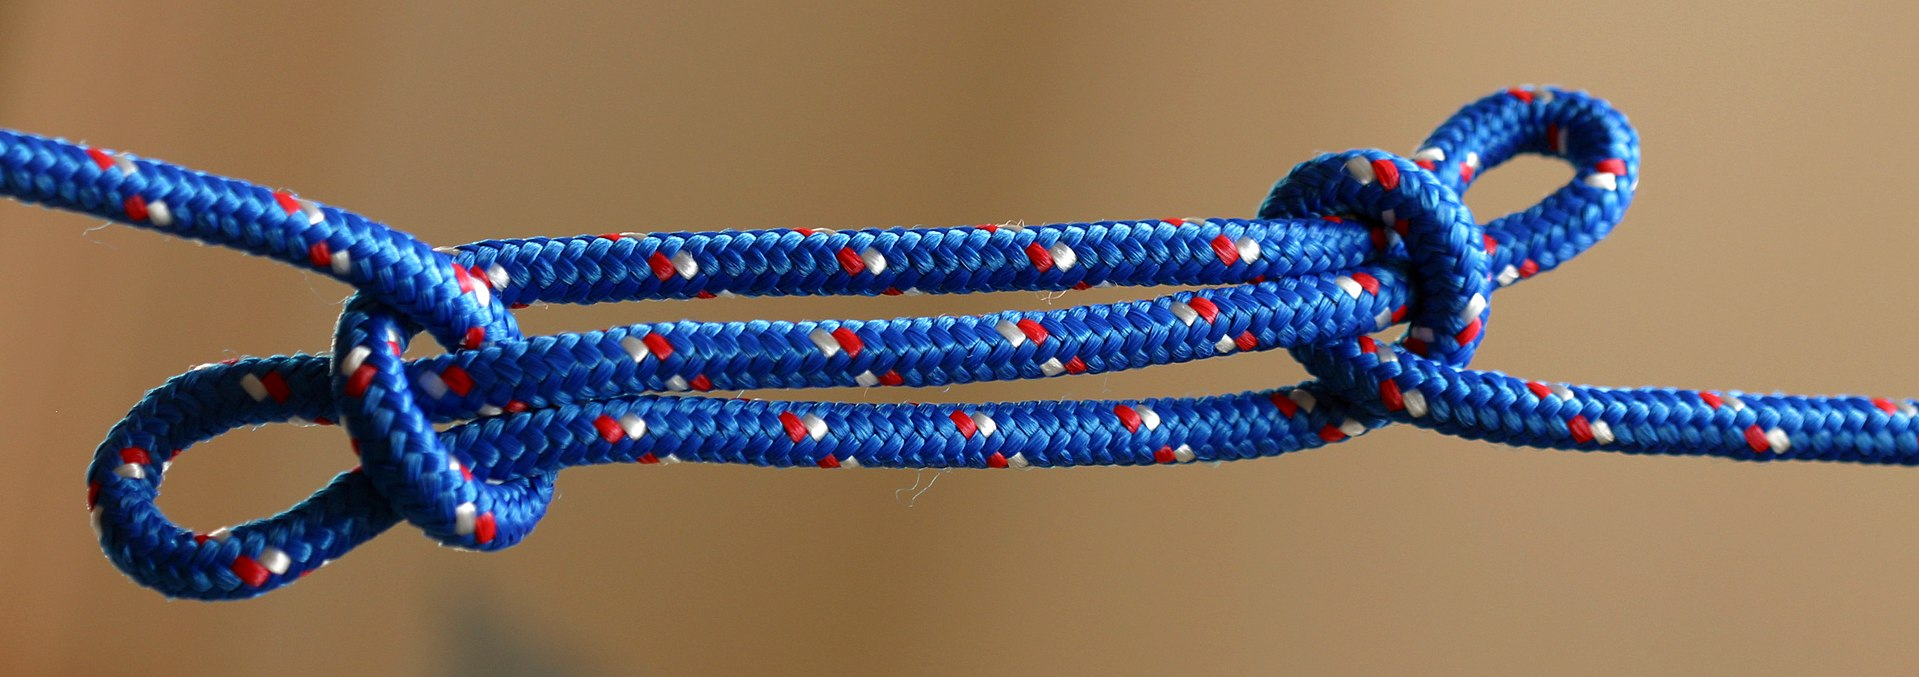 All about knots - their use and how to tie them - Wilderness Arena ...